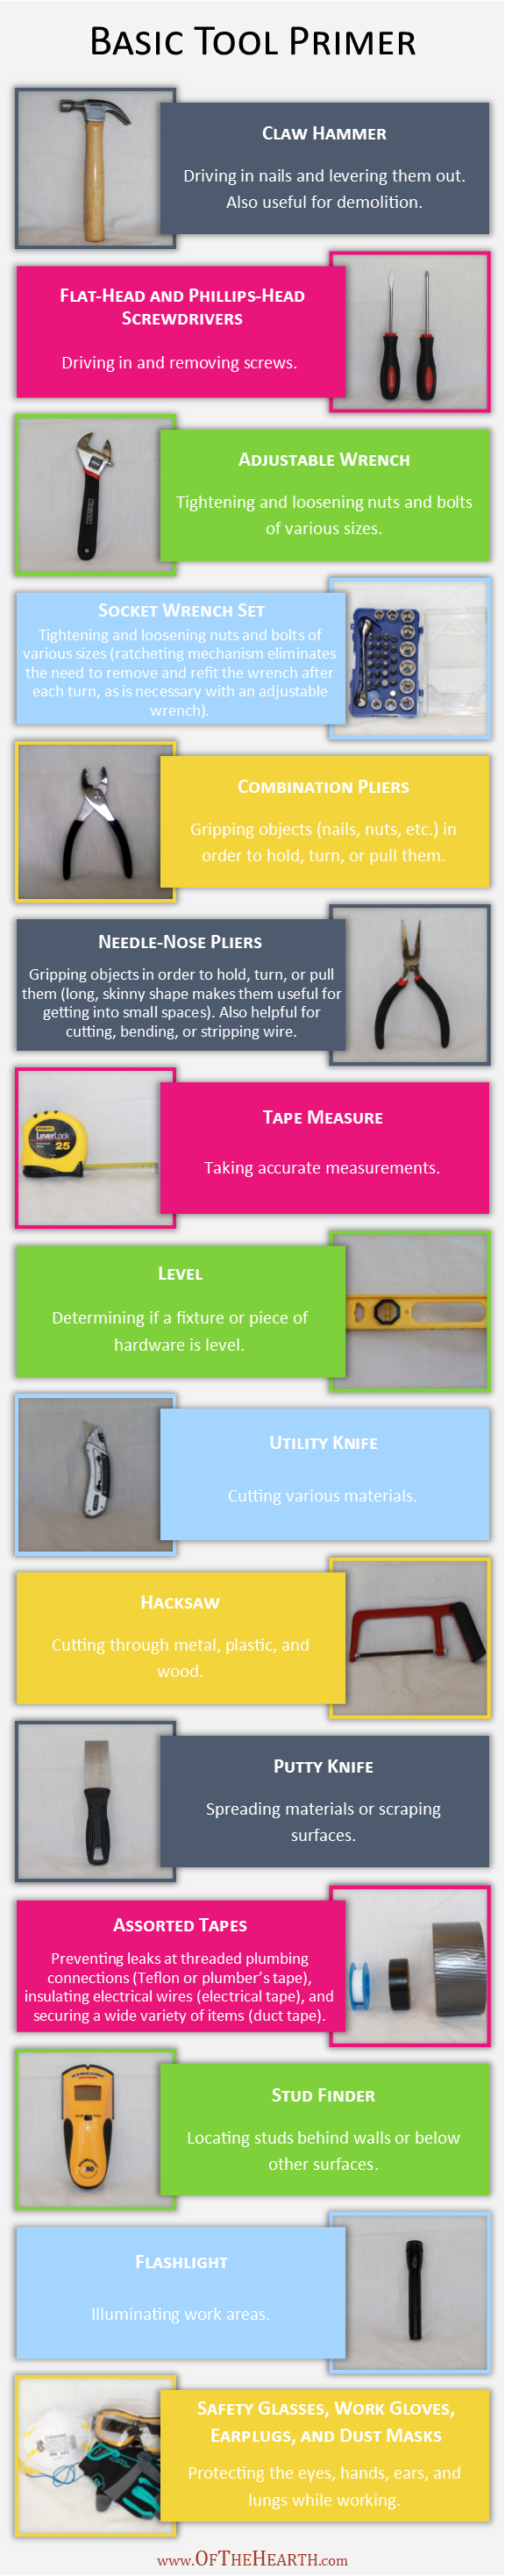 Basic Tool Primer | Don't feel overwhelmed when sorting through the oddly shaped objects in a toolbox. Build your knowledge and confidence with this basic tool primer!